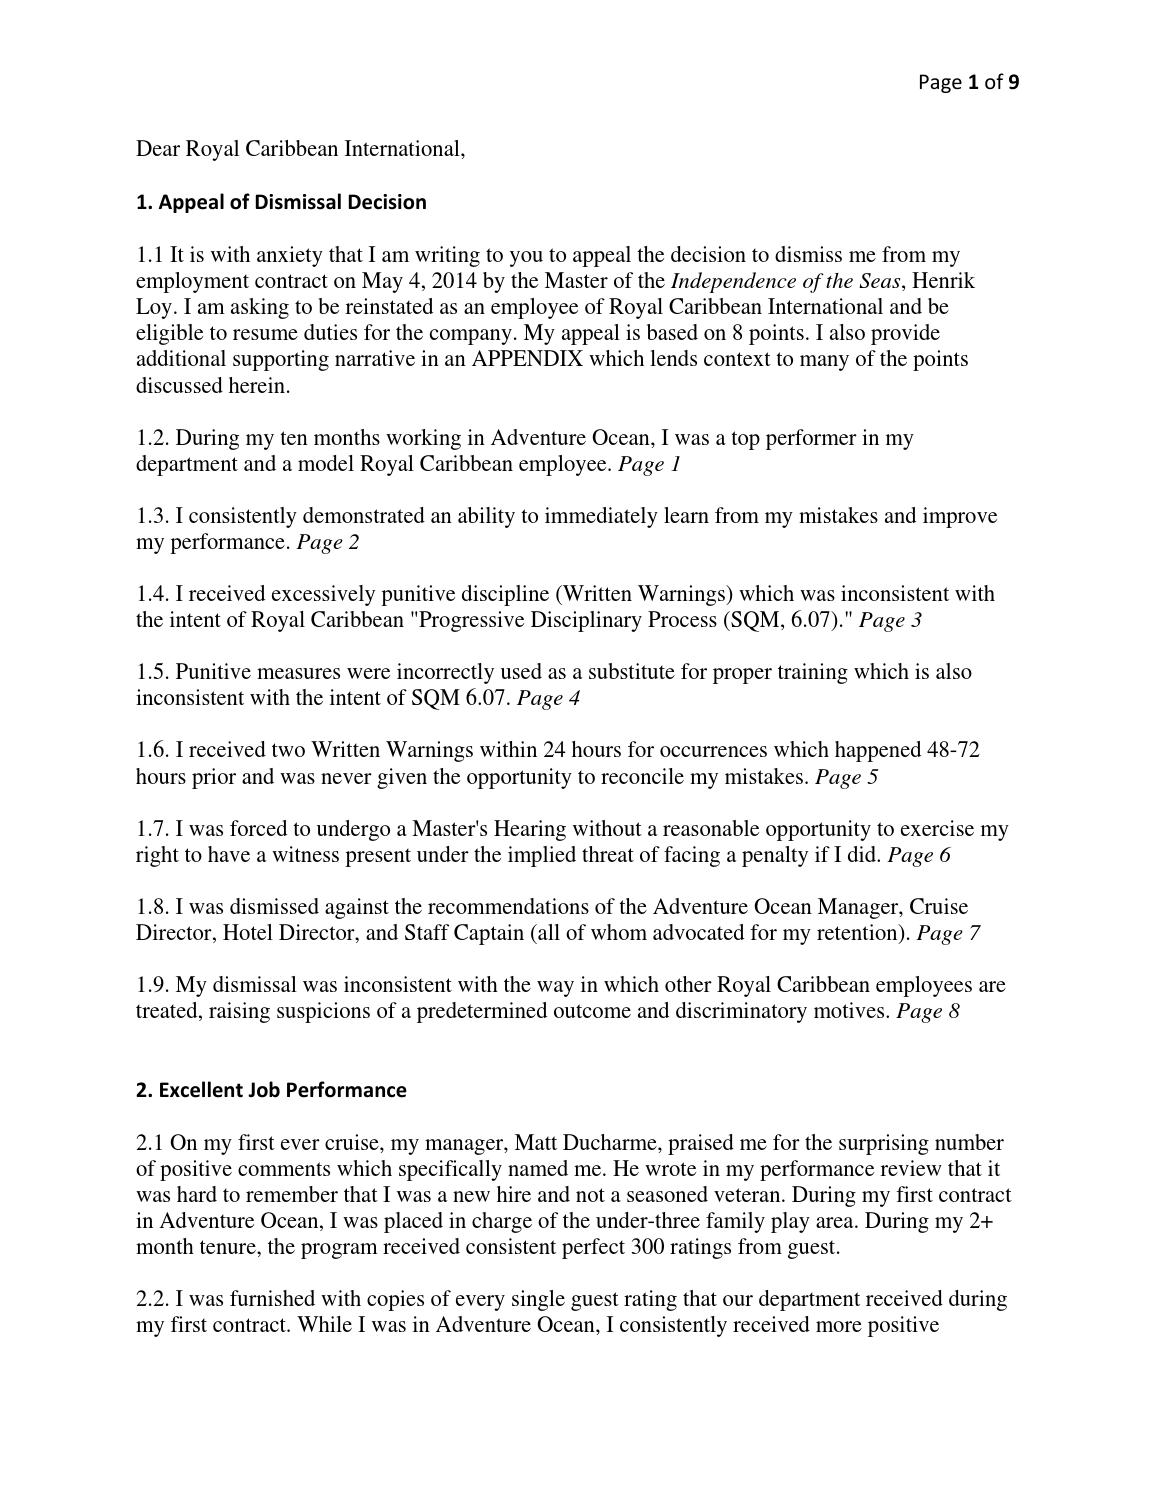 appeal of dismissal from royal caribbean by zachariah wiedeman issuu